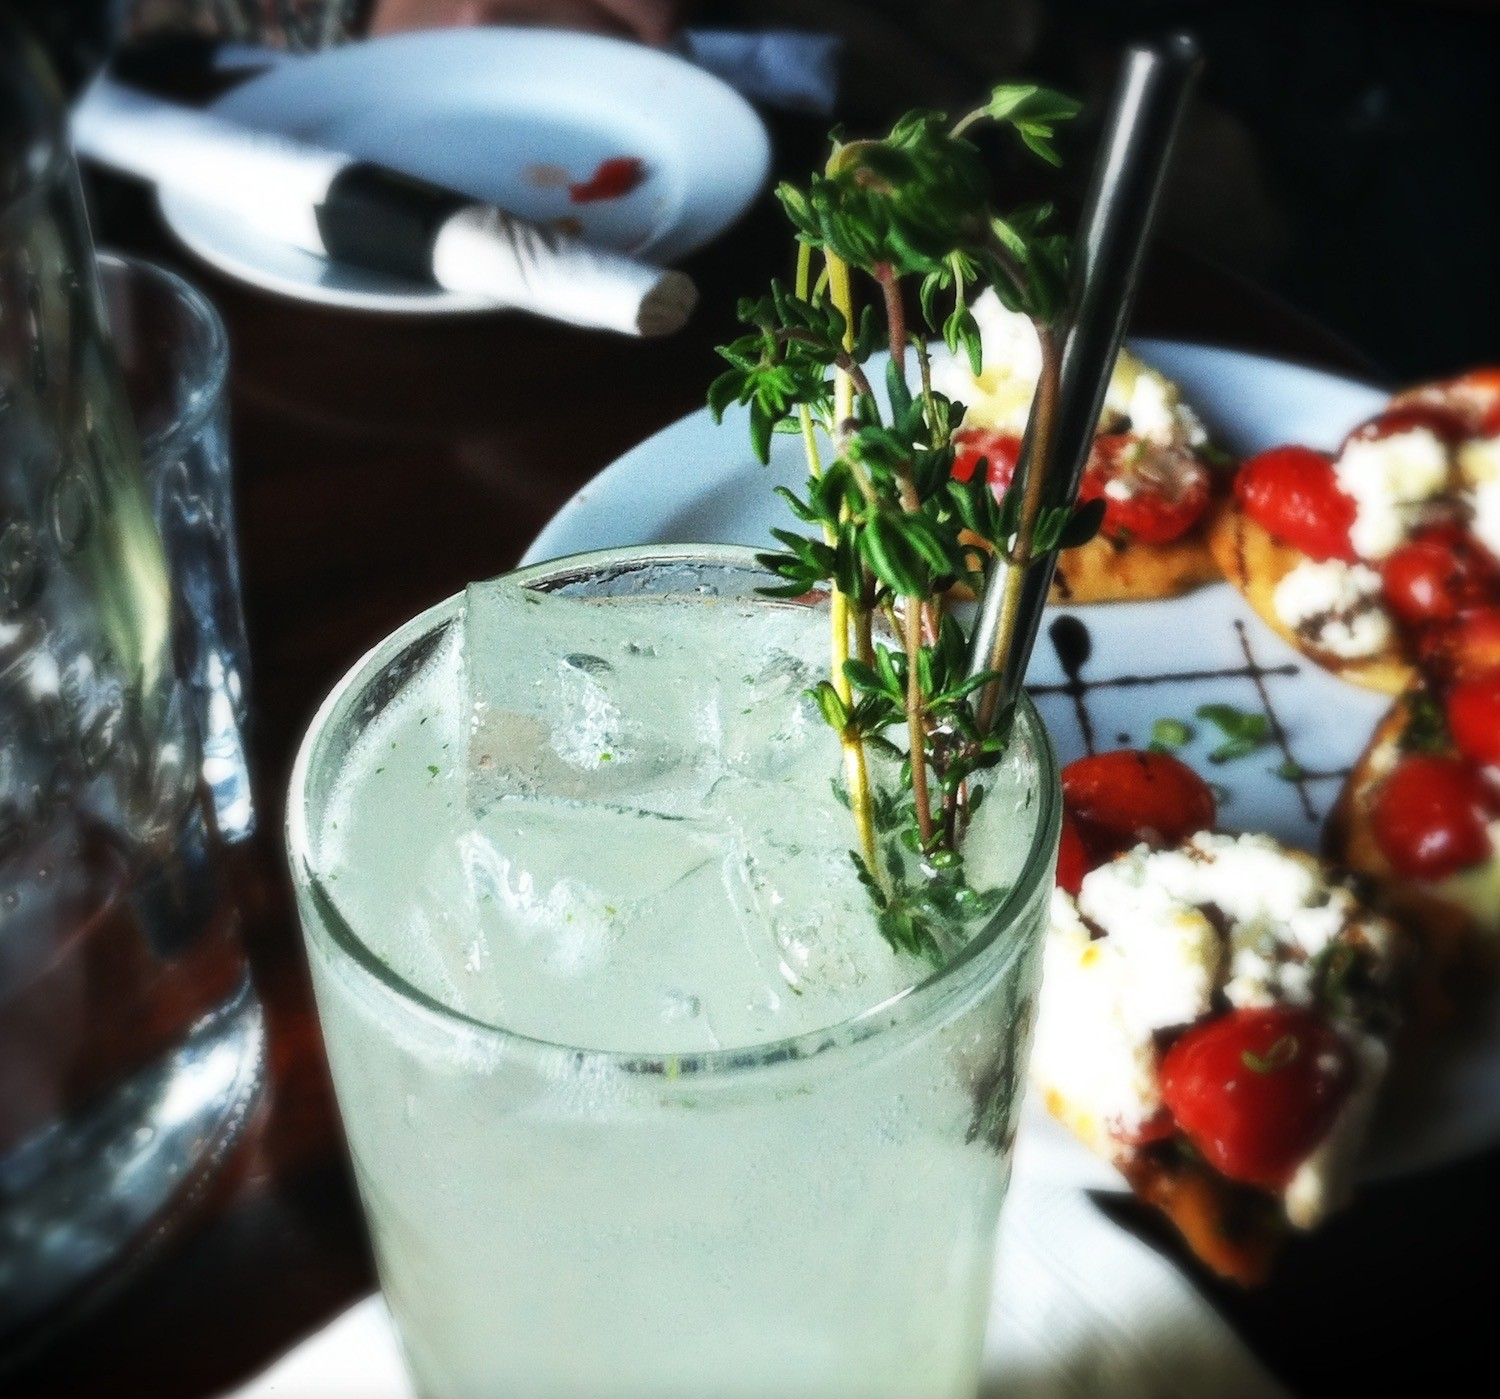 Cocktails and summer nosh at The Drawing Room.